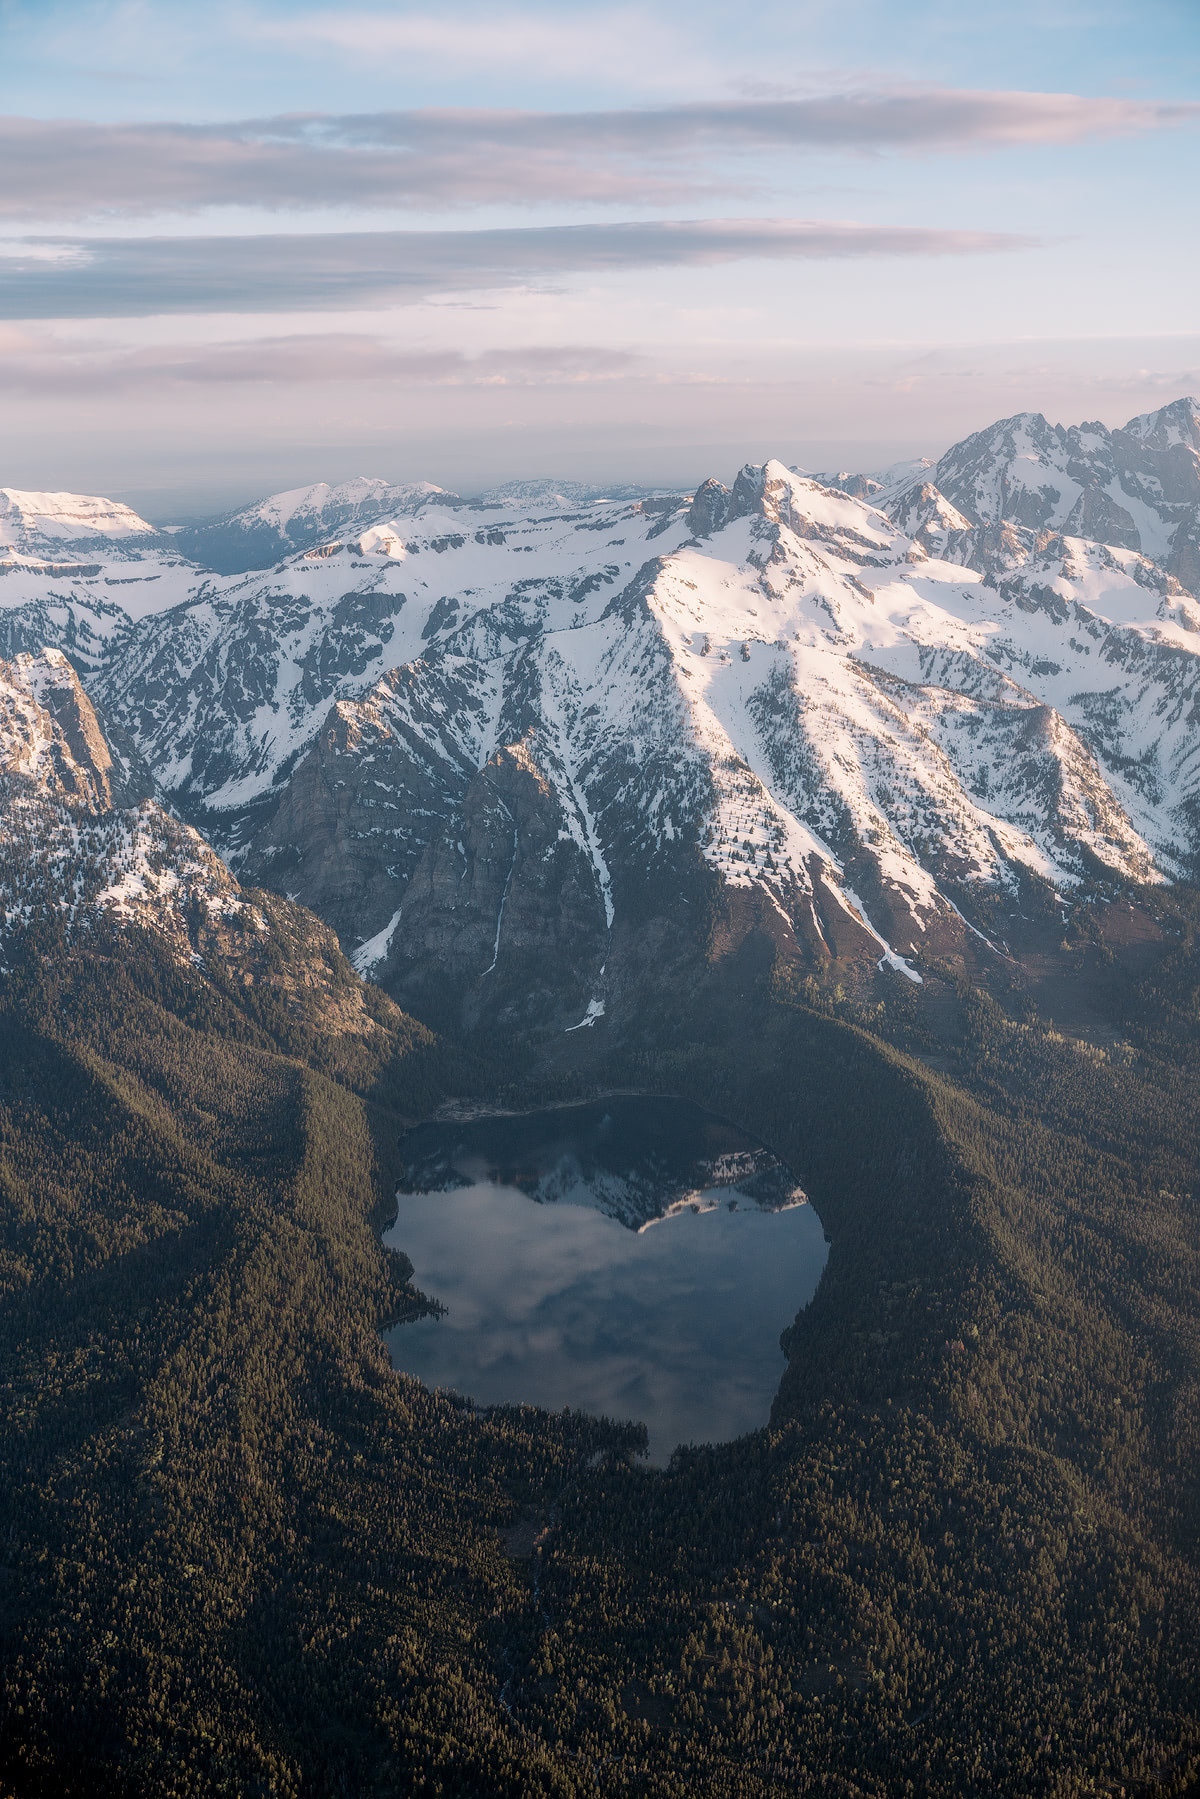 Unforgettable-Scenic-Flight-Over-Grand-Teton-&-Yellowstone-National-Parks-Renee-Roaming-08